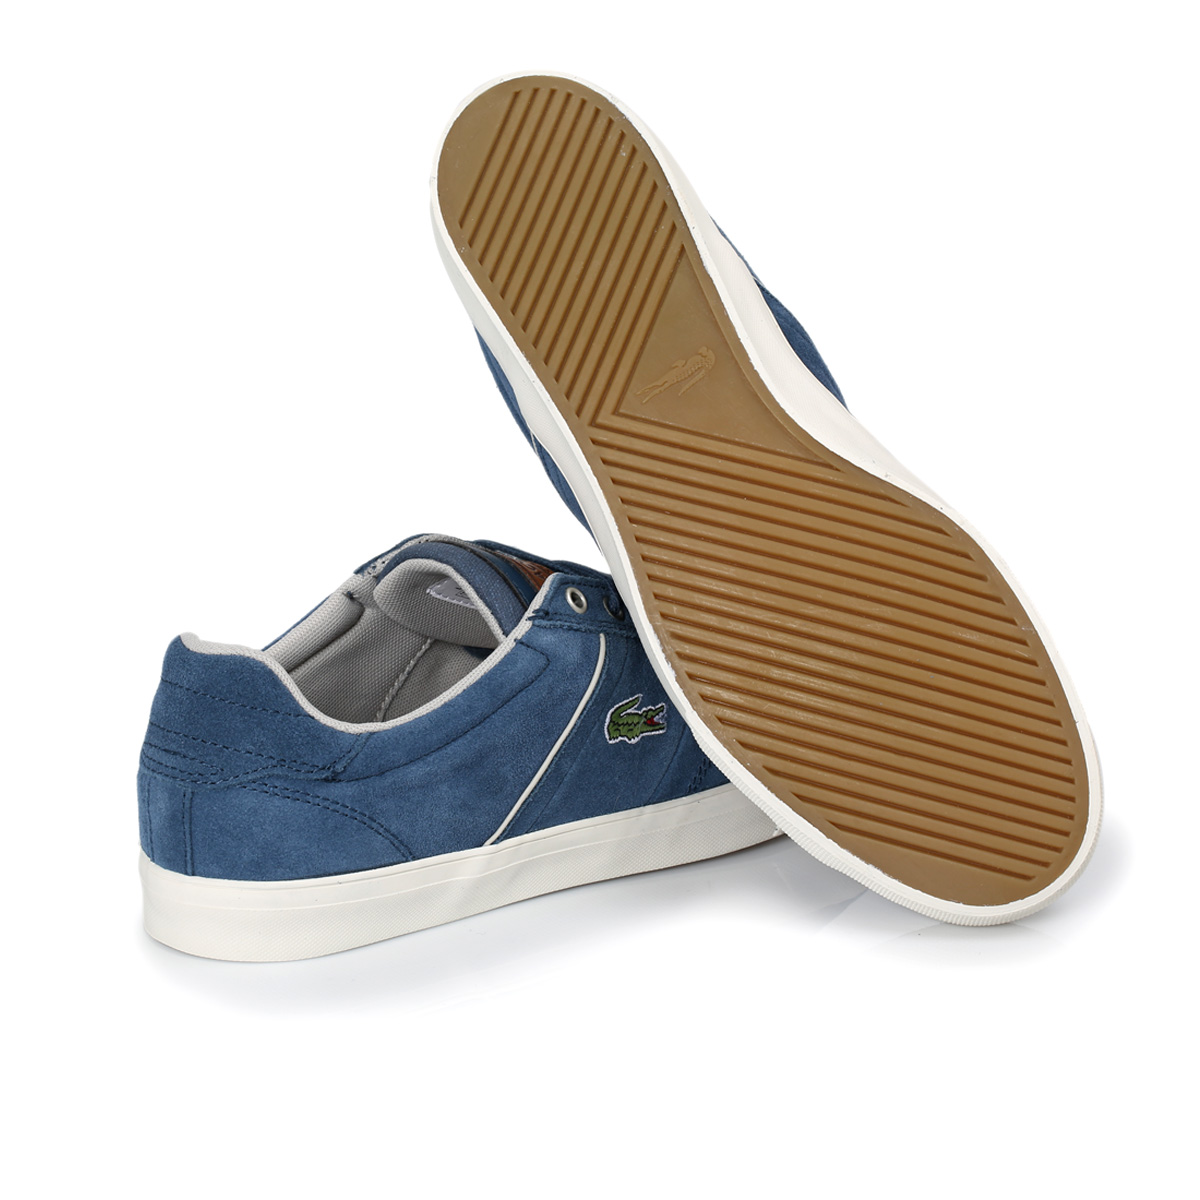 41eb85ff7 ... lacoste shoes price list in india ...